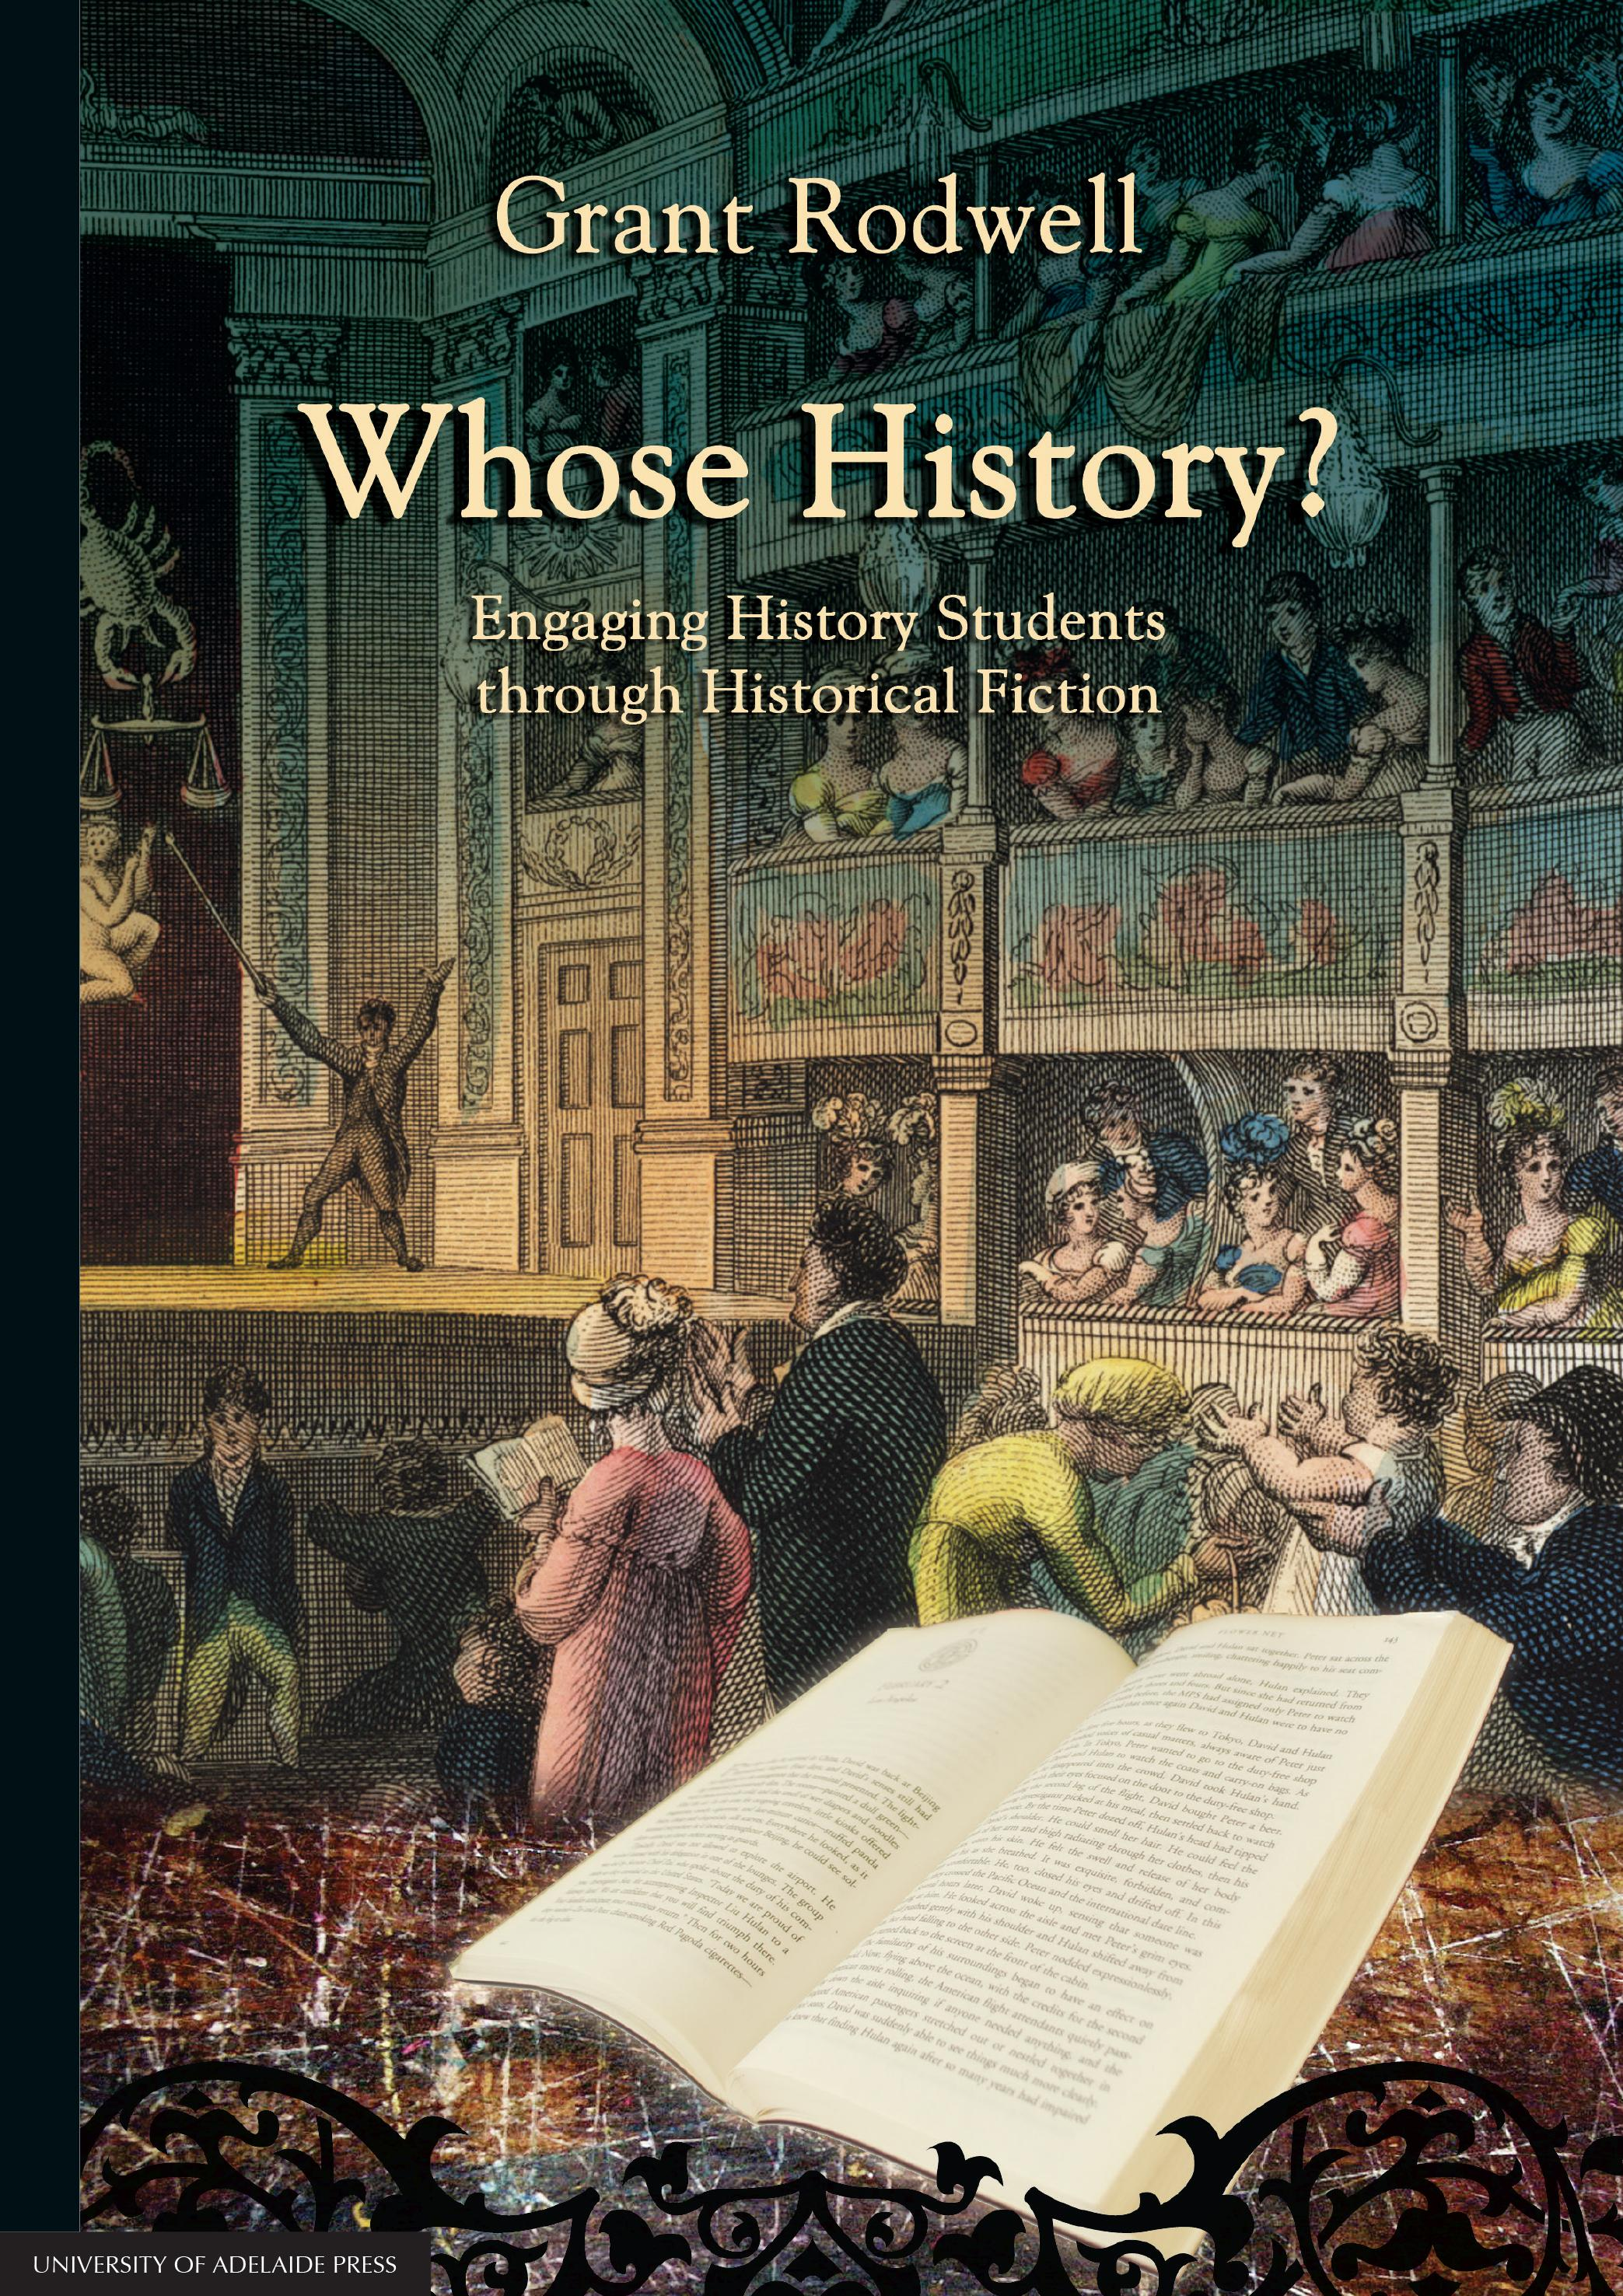 Whose history cover